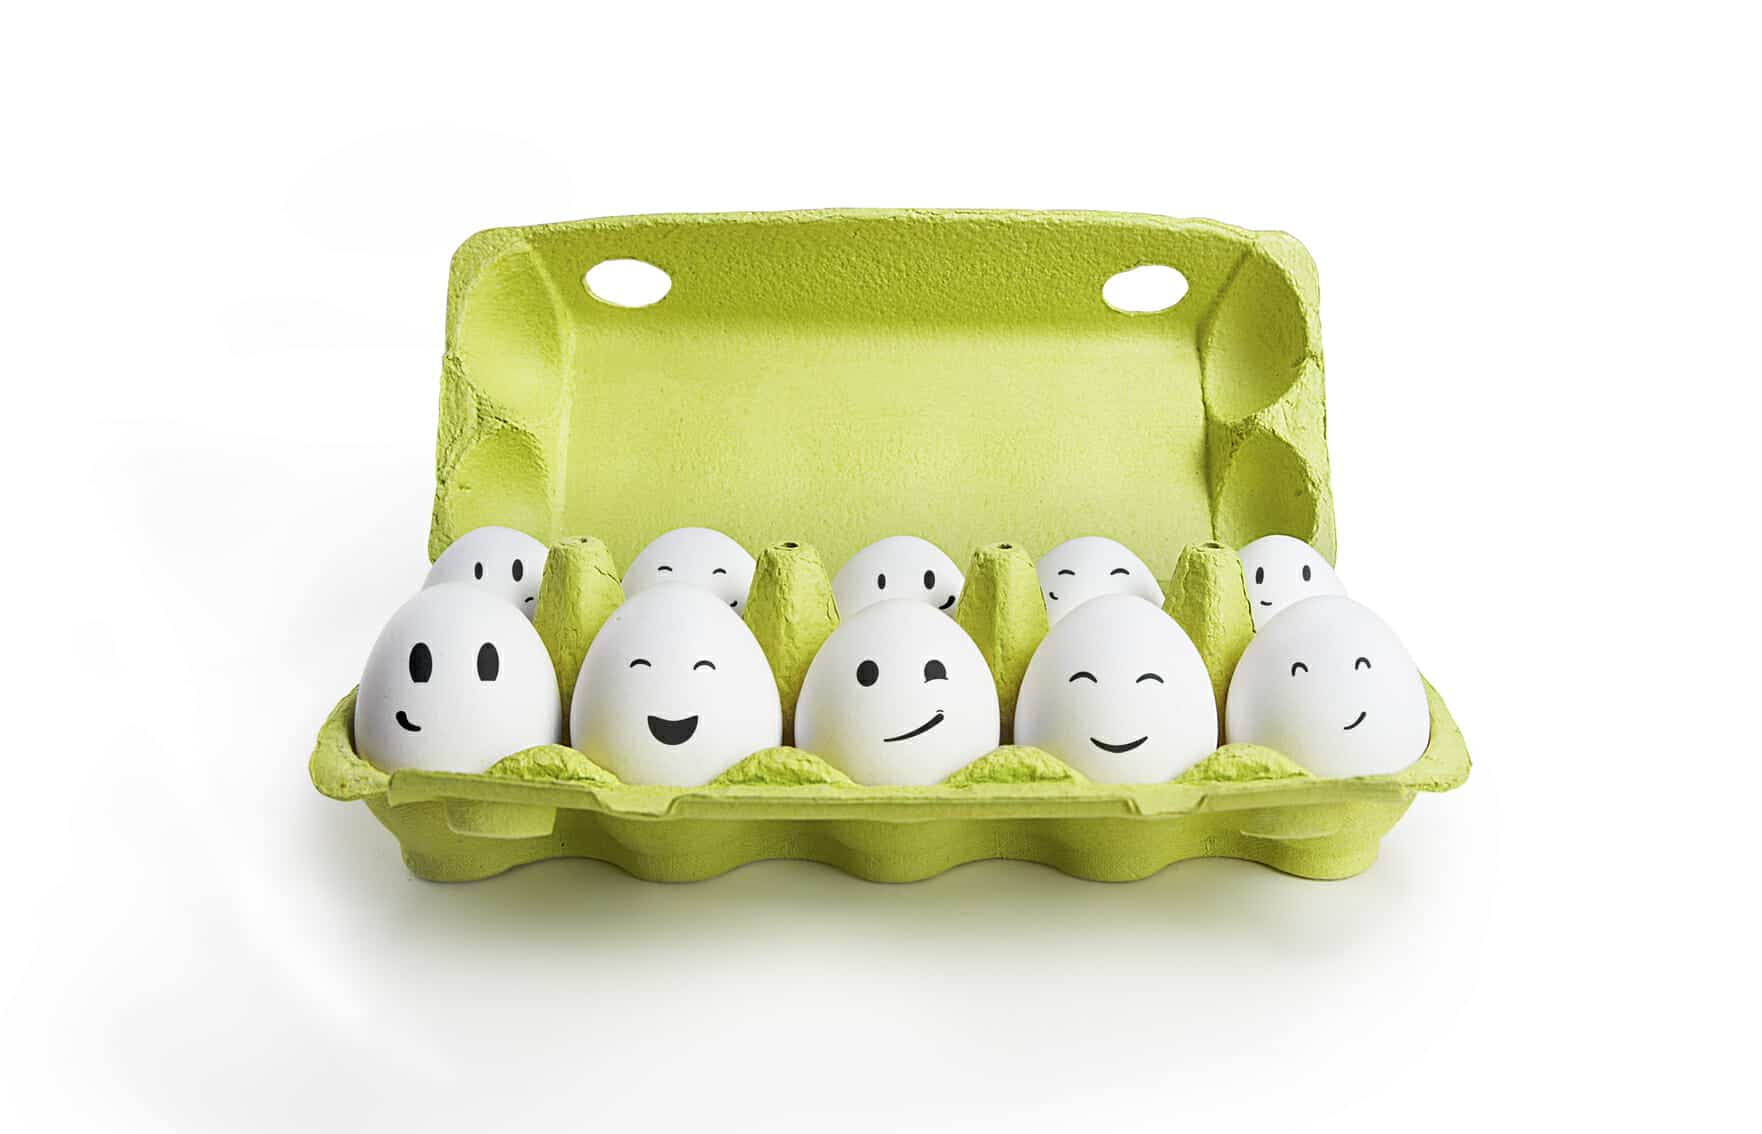 Eggs with smiling faces